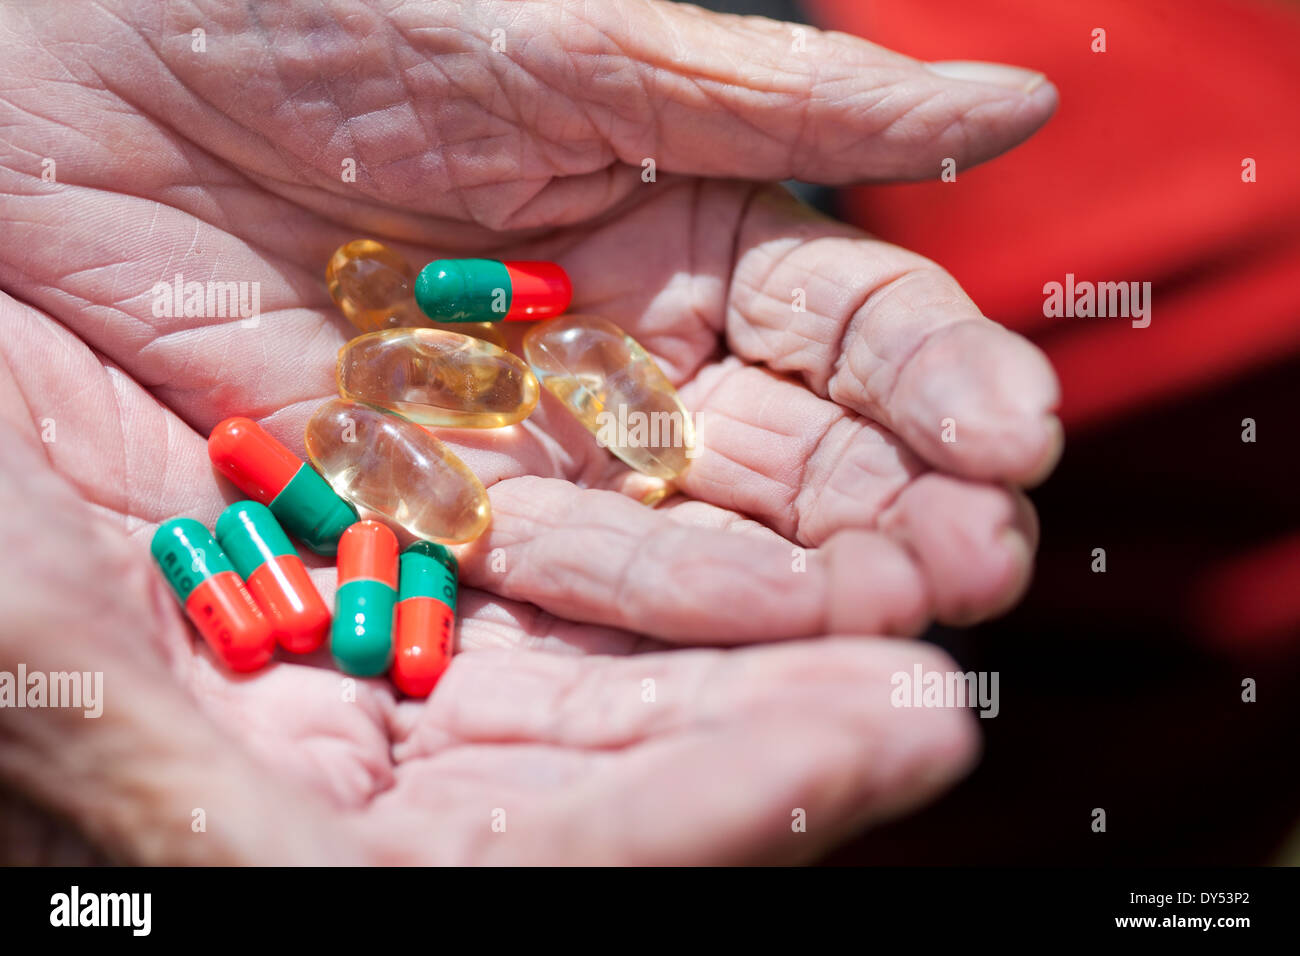 Close up of senior woman's hands holding pills Stock Photo